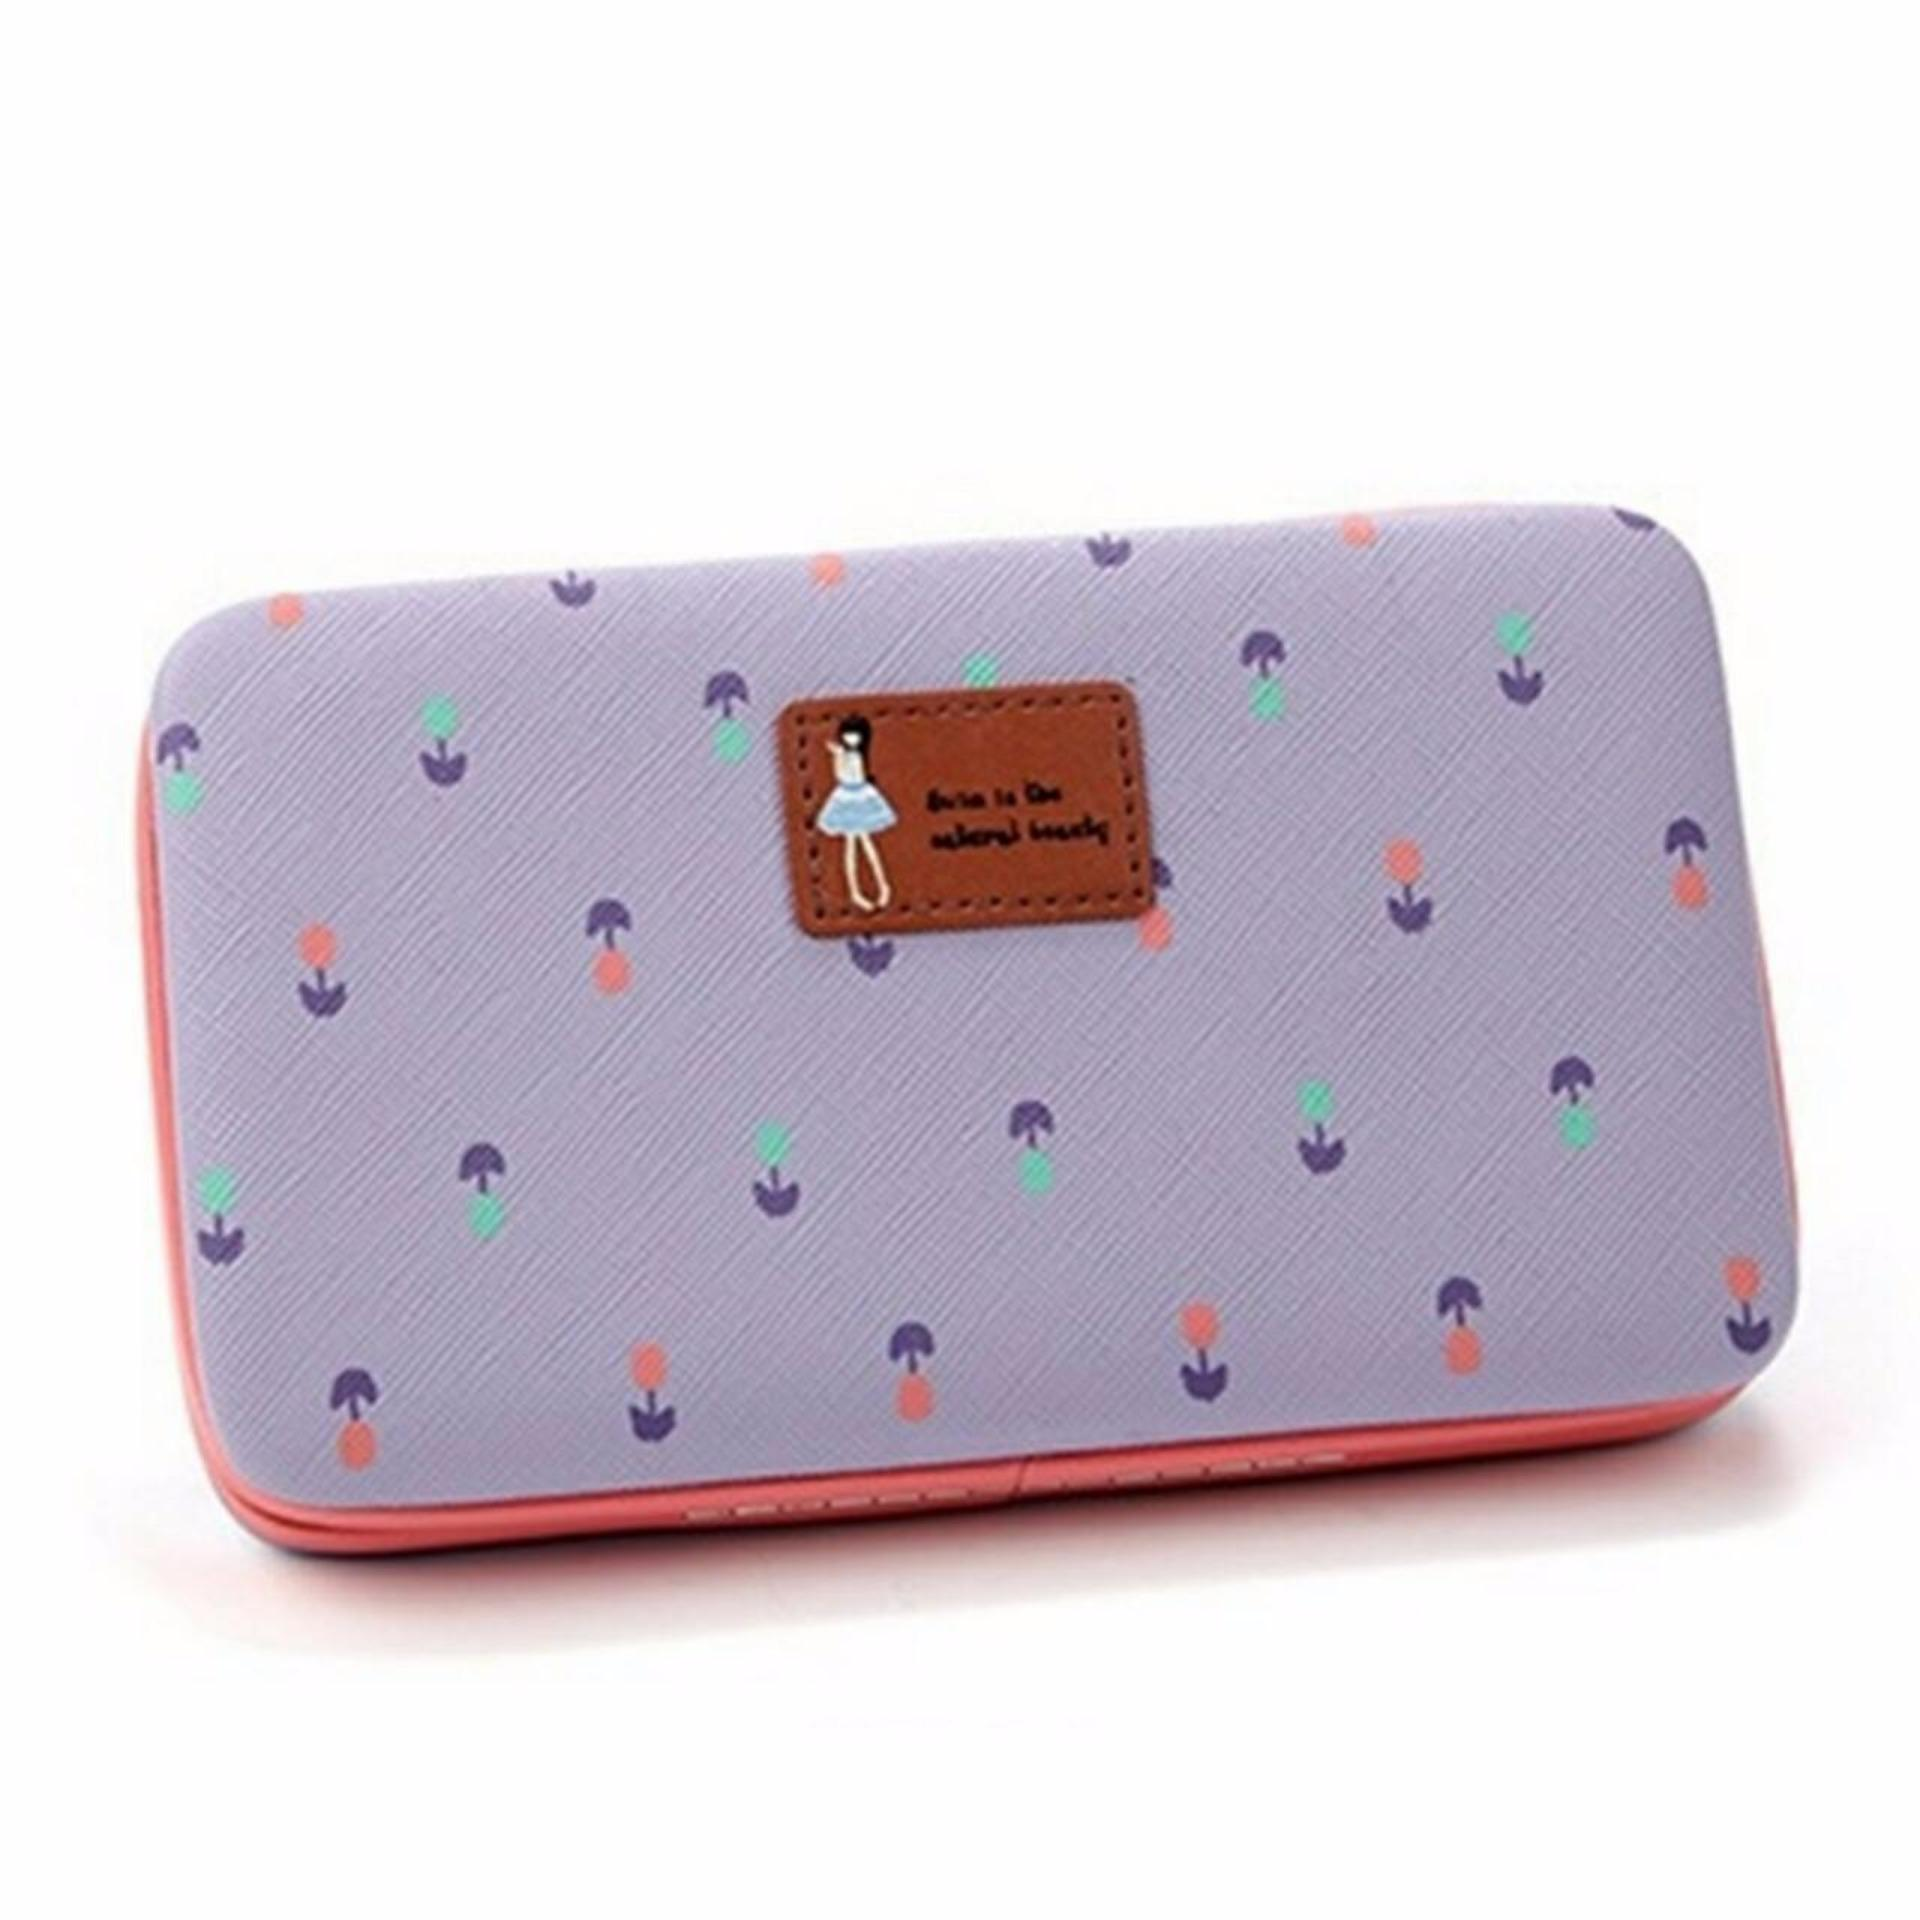 Ulasan Tentang Jims Honey Best Seller Wallet Import Lady Wallet Purple